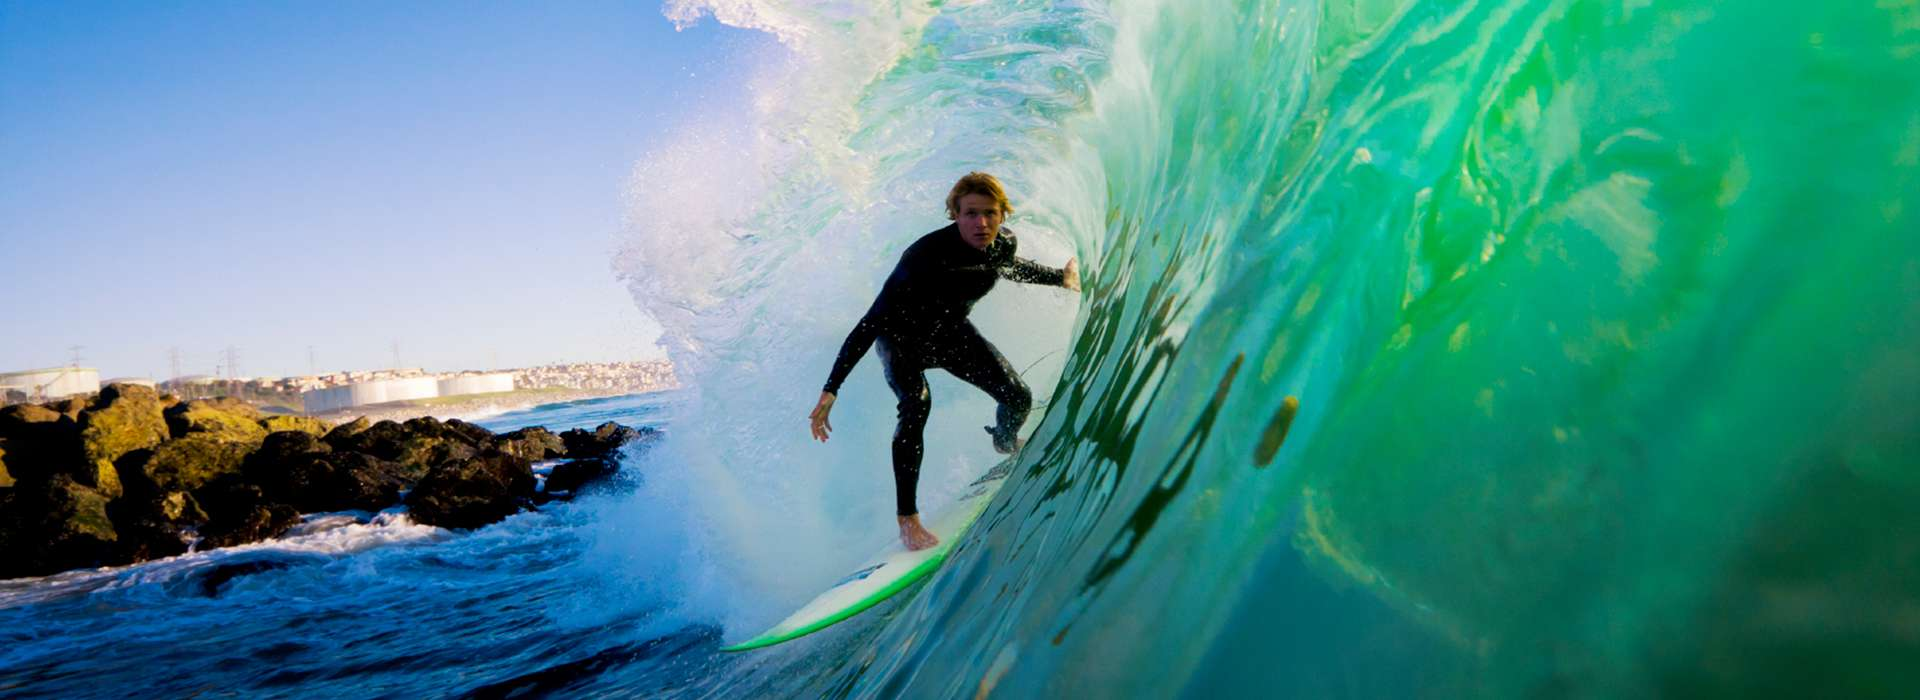 Surf en el Hawaii europeo